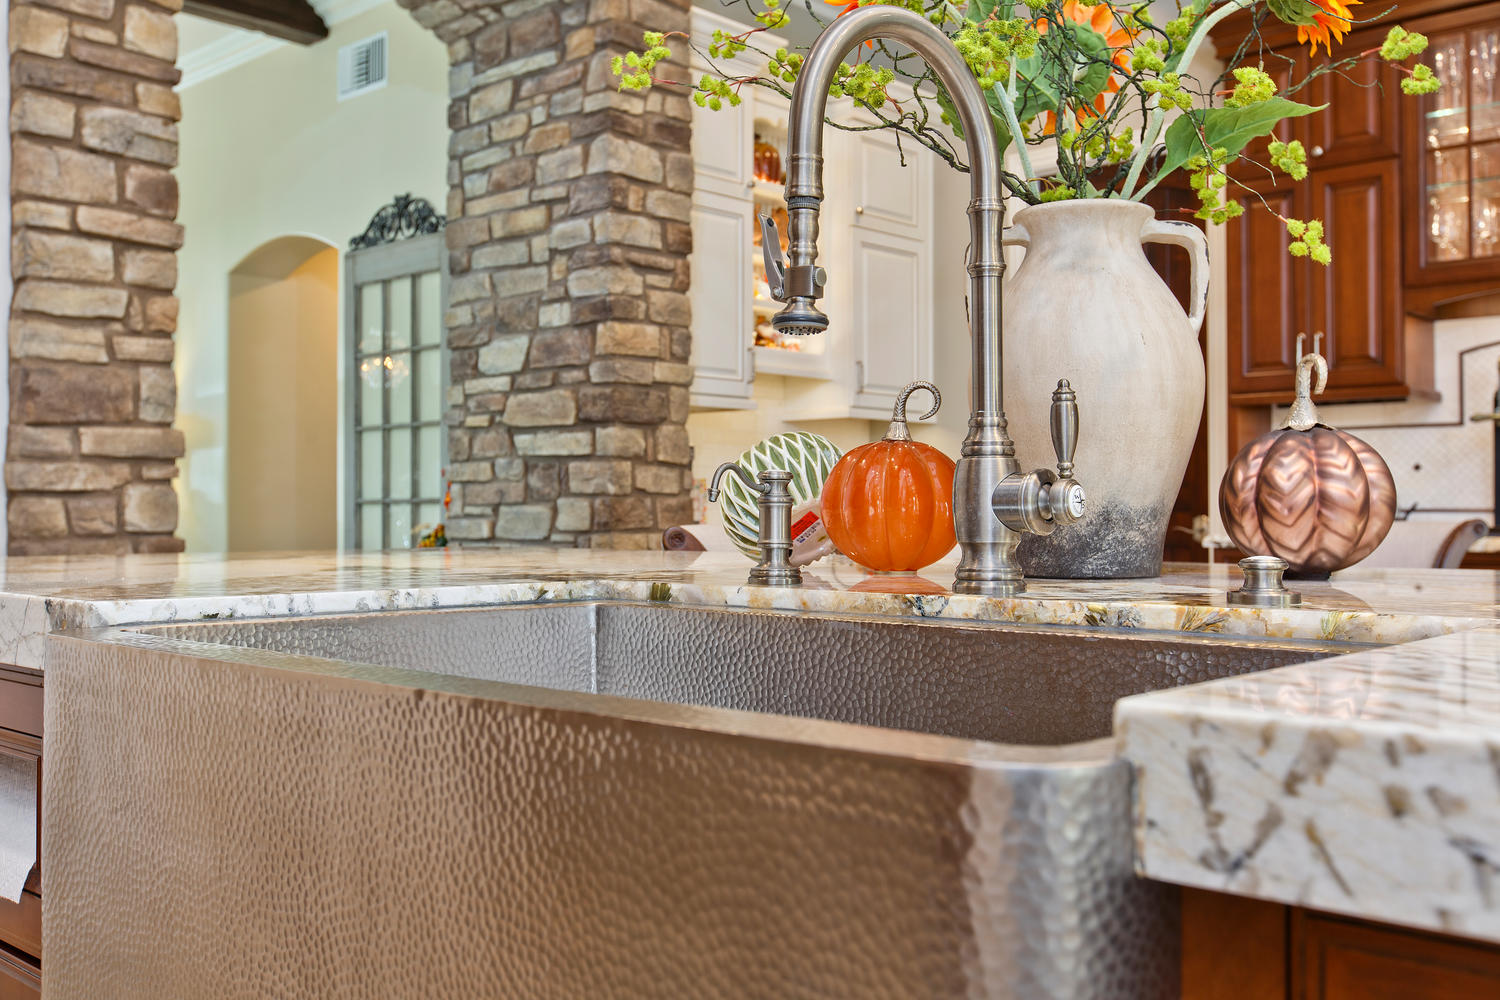 6993 Blue Orchid Ln Carlsbad-large-021-23-6993 Blue Orchid Lane KITCHEN-1500x1000-72dpi.jpg